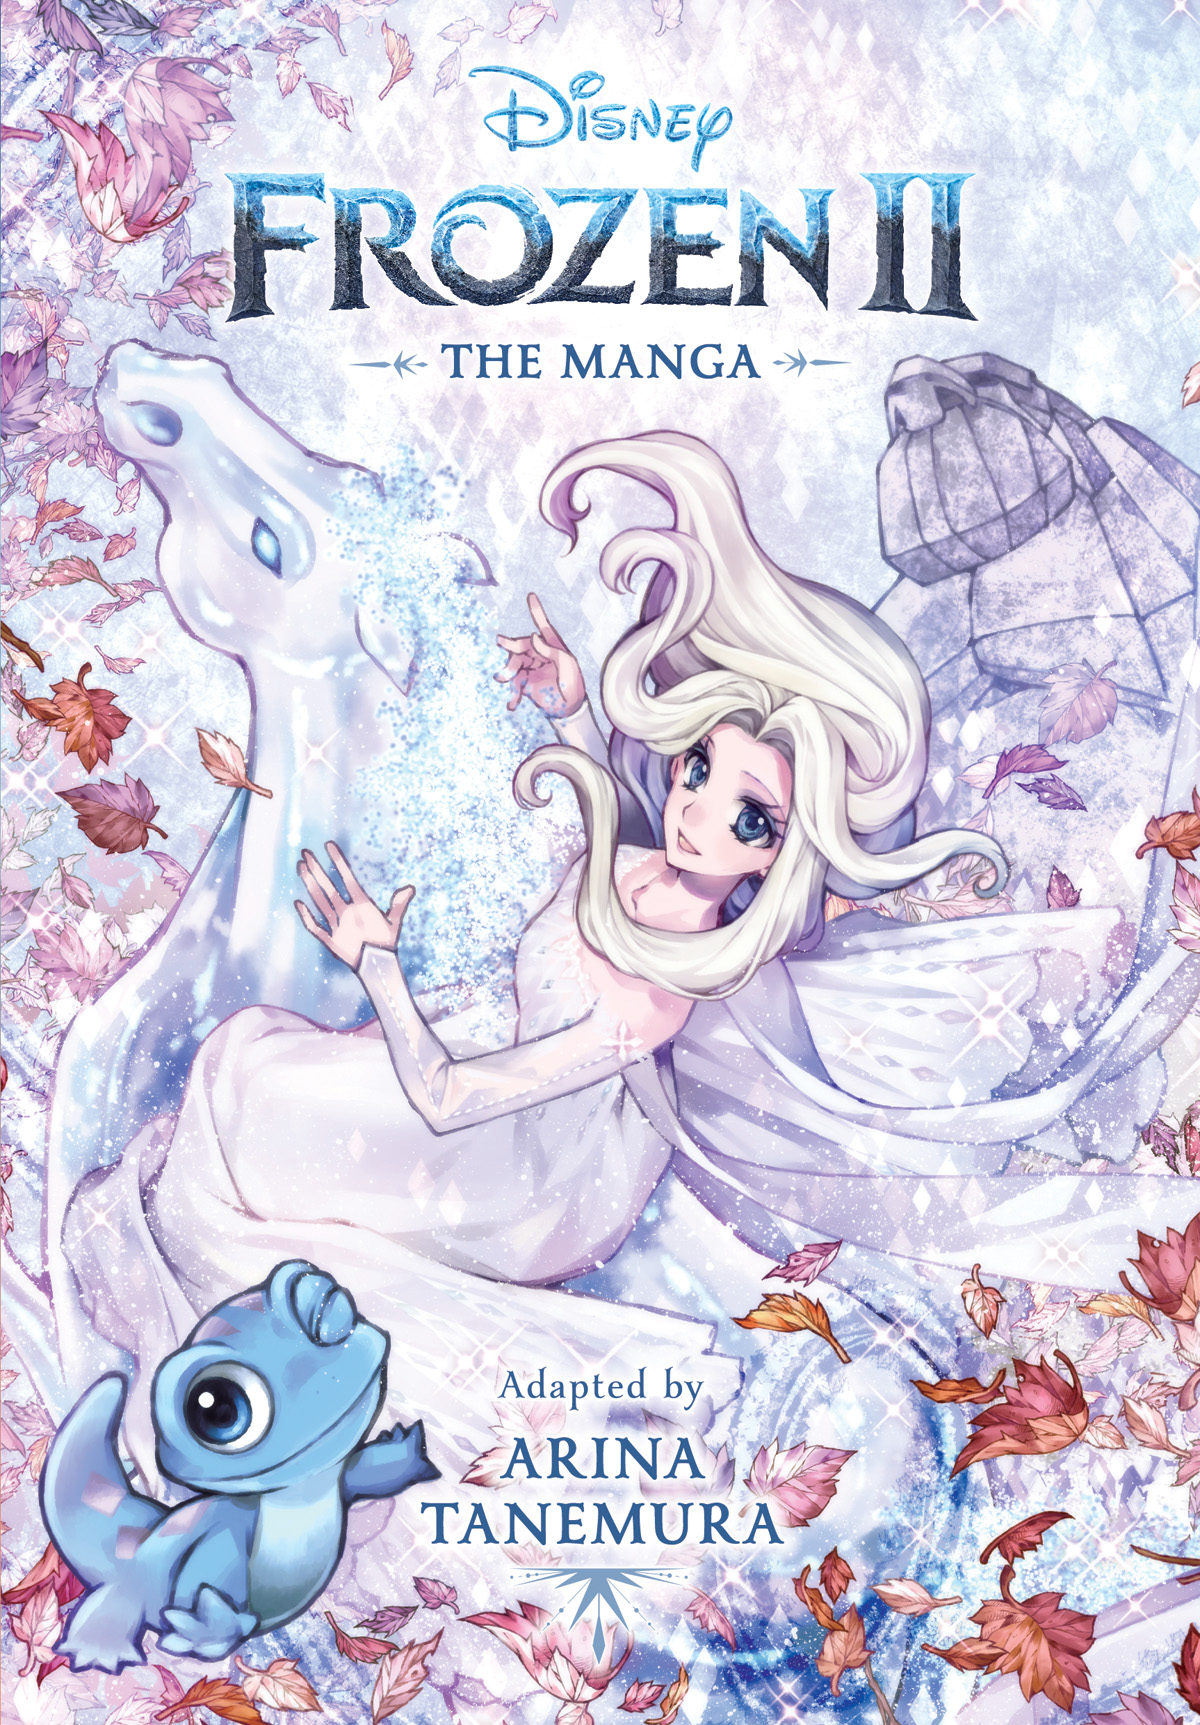 Frozen 2 Manga is a Fan's Personal Adaptation of the Movie